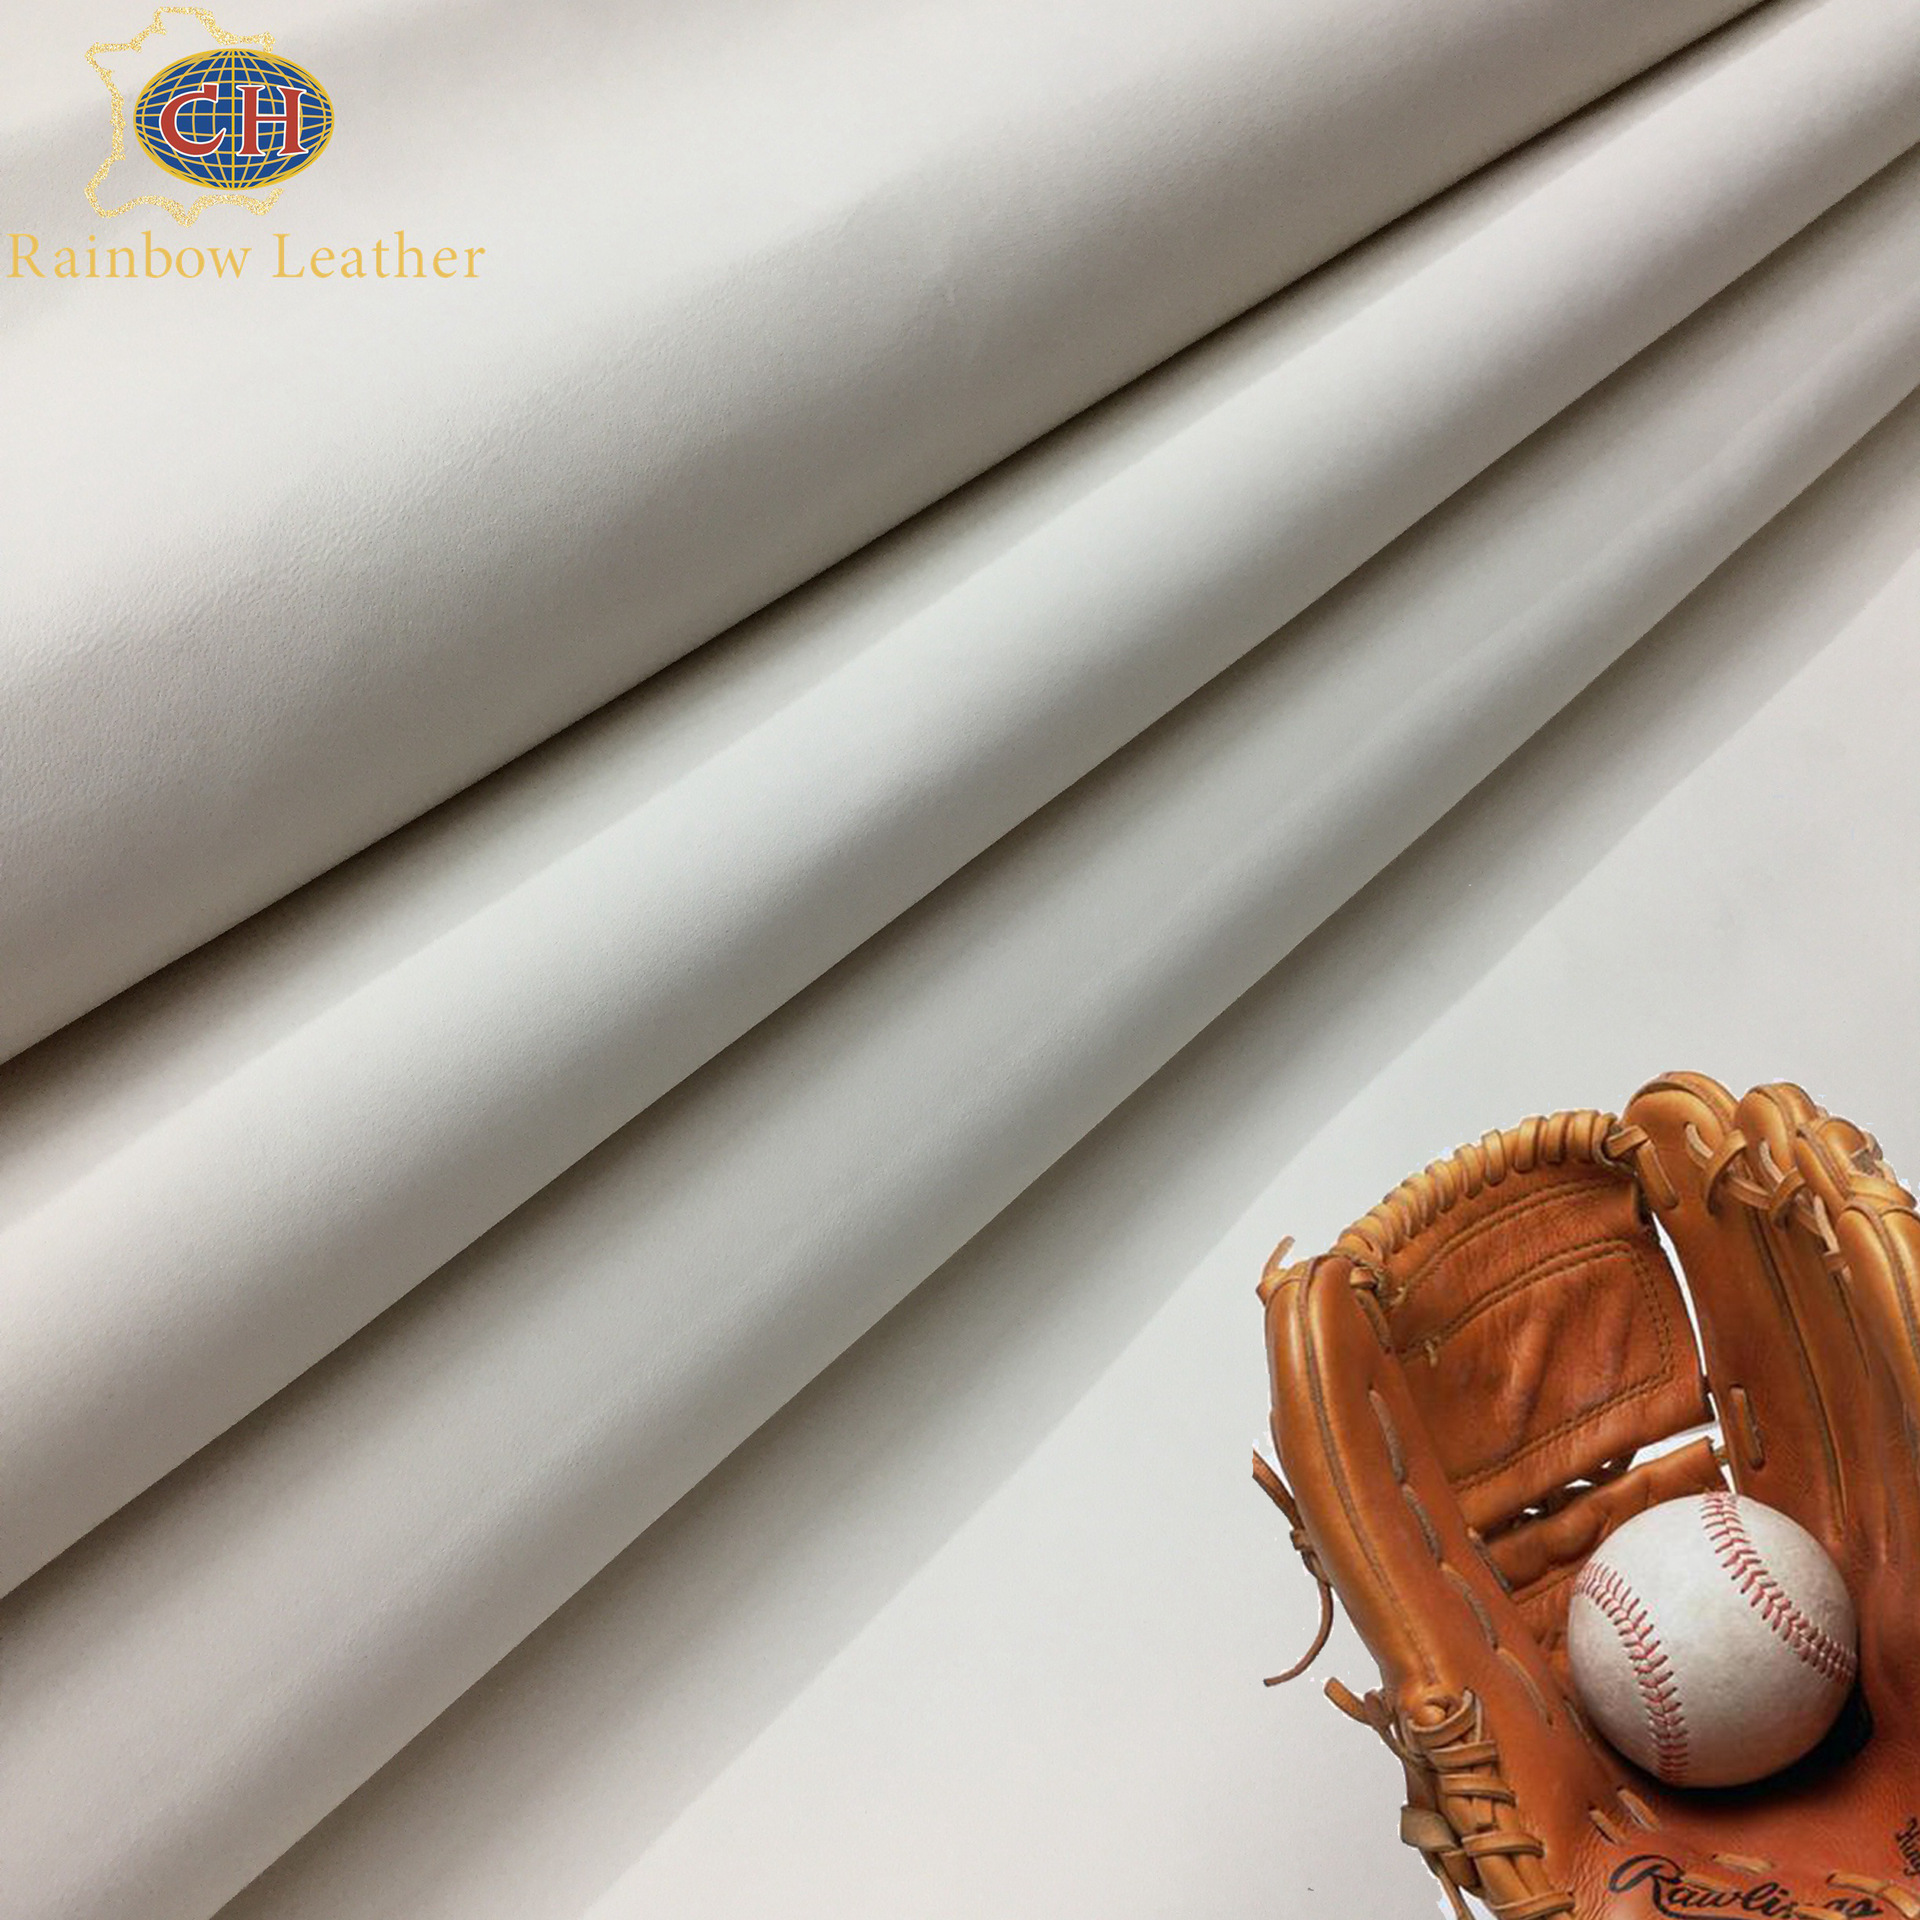 CAIHONG Chrome free Baseball Leather for white cattle leather